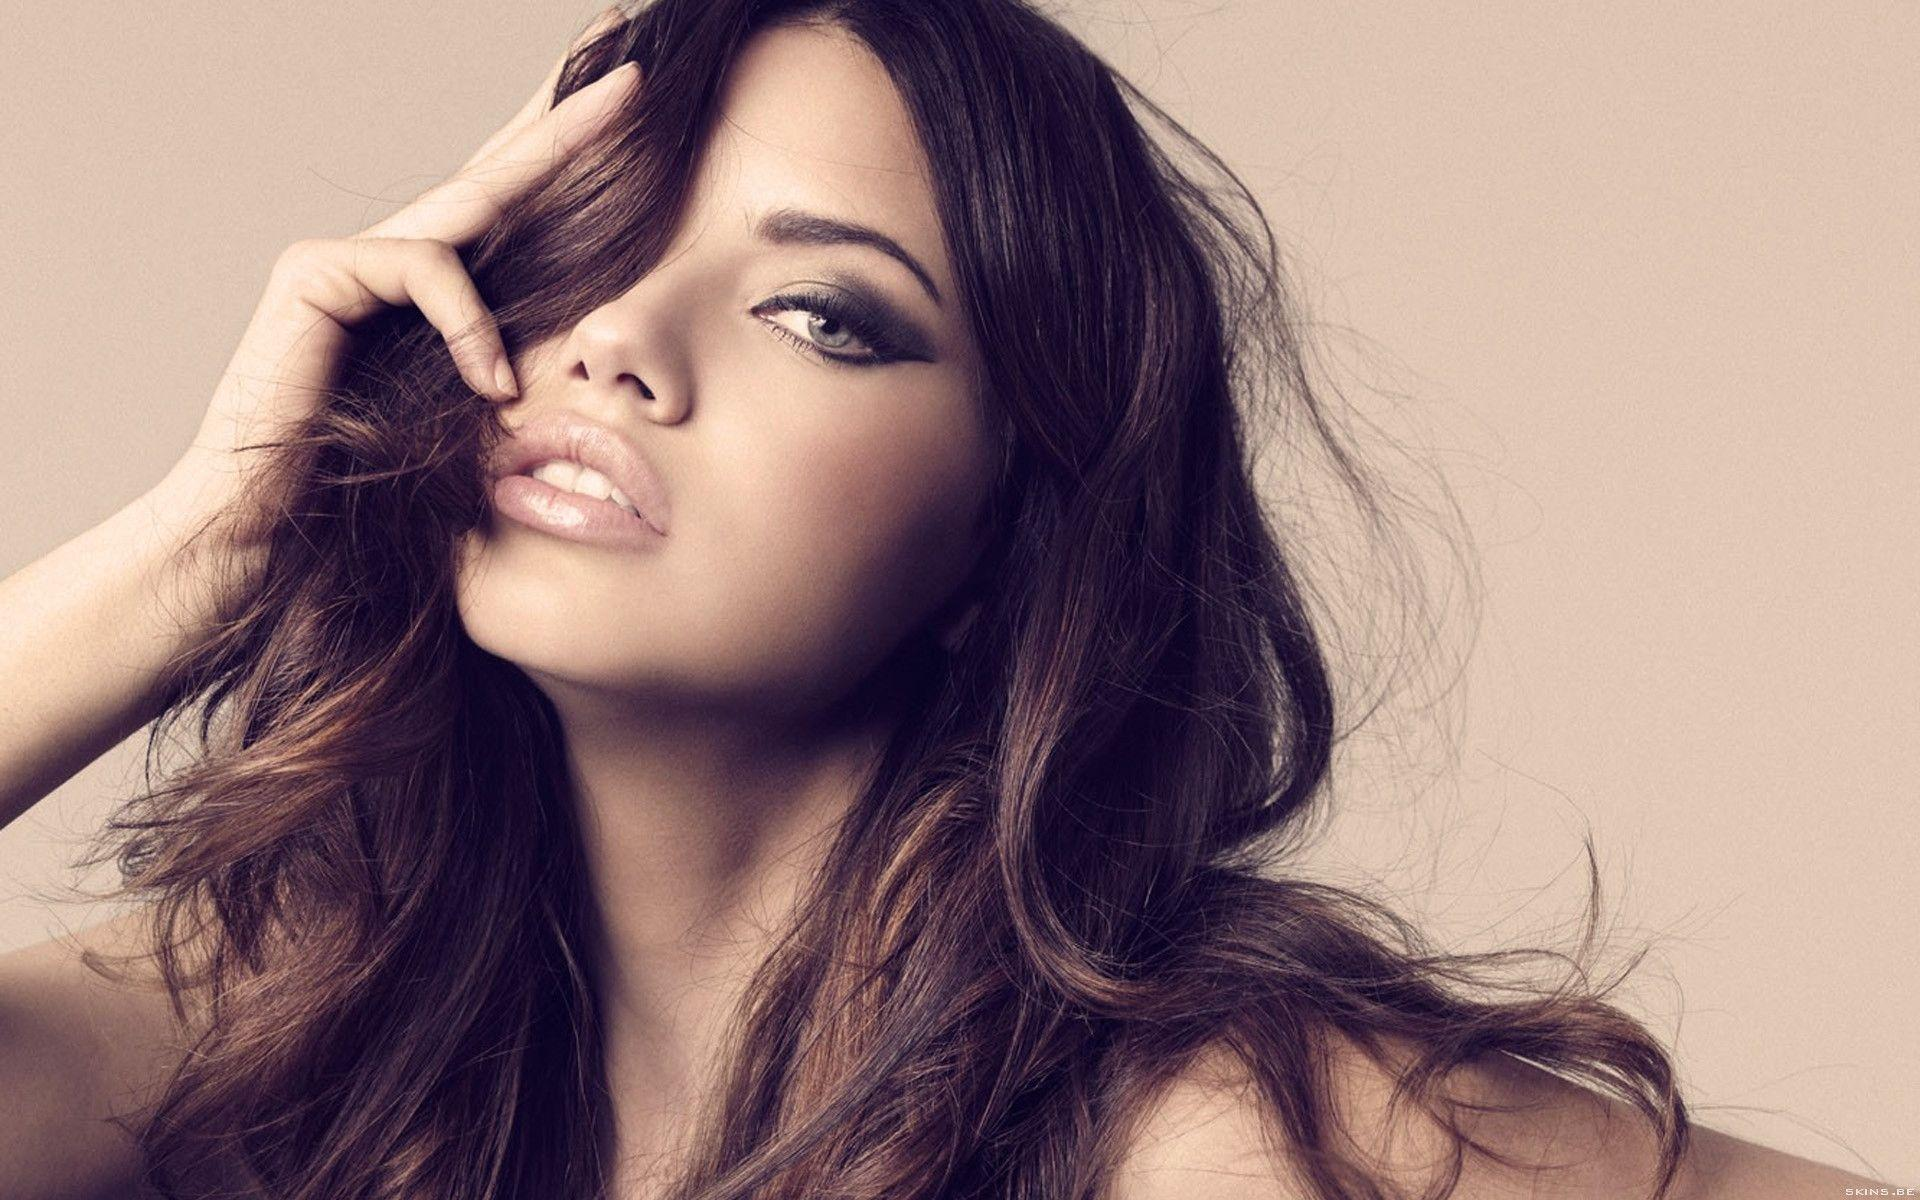 Adriana lima wallpapers wallpaper cave adriana lima desktop wallpapers voltagebd Gallery